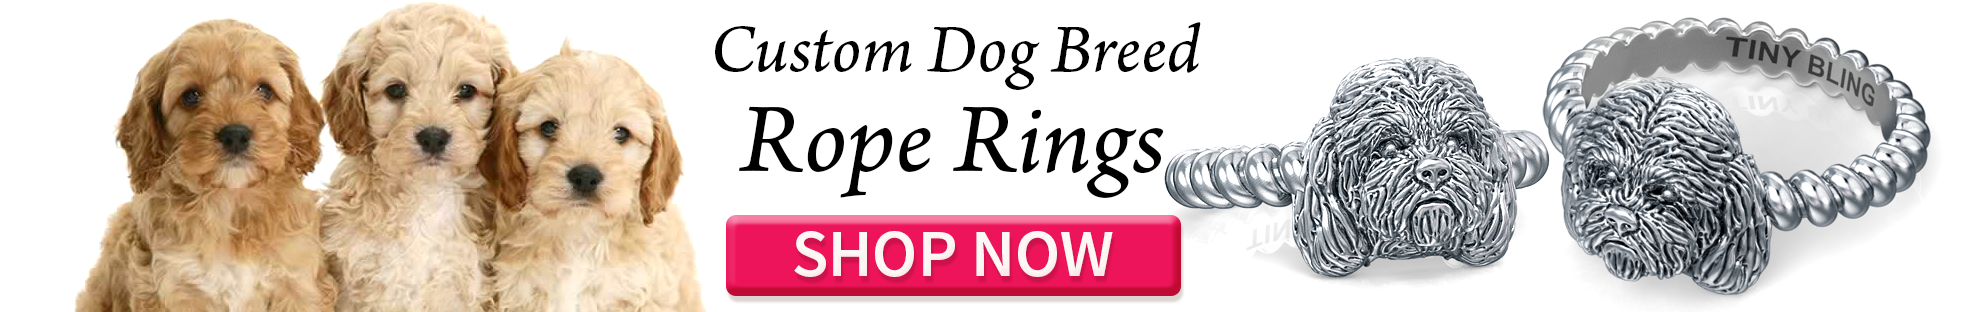 Ting Bling Custom Dog Jewelry Rope Ring Cockapoo Breed Banner